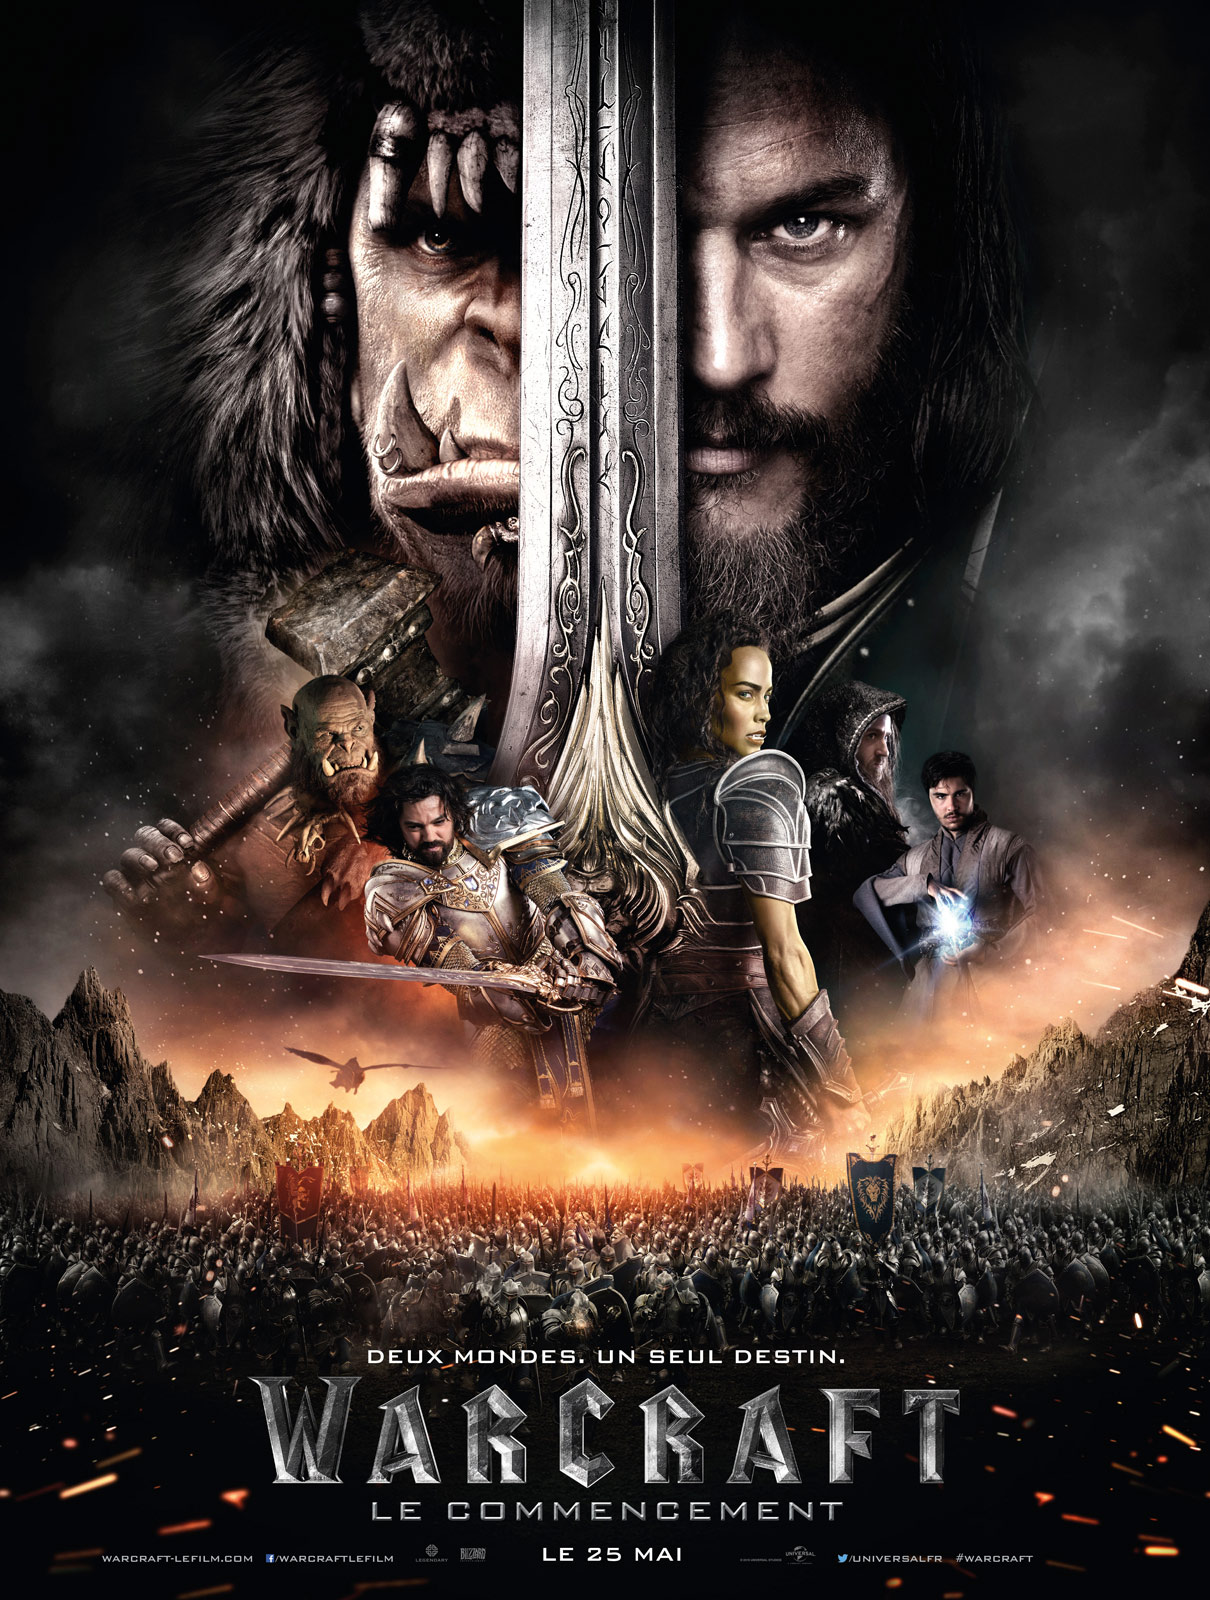 Warcraft : Le commencement TRUEFRENCH HDRiP